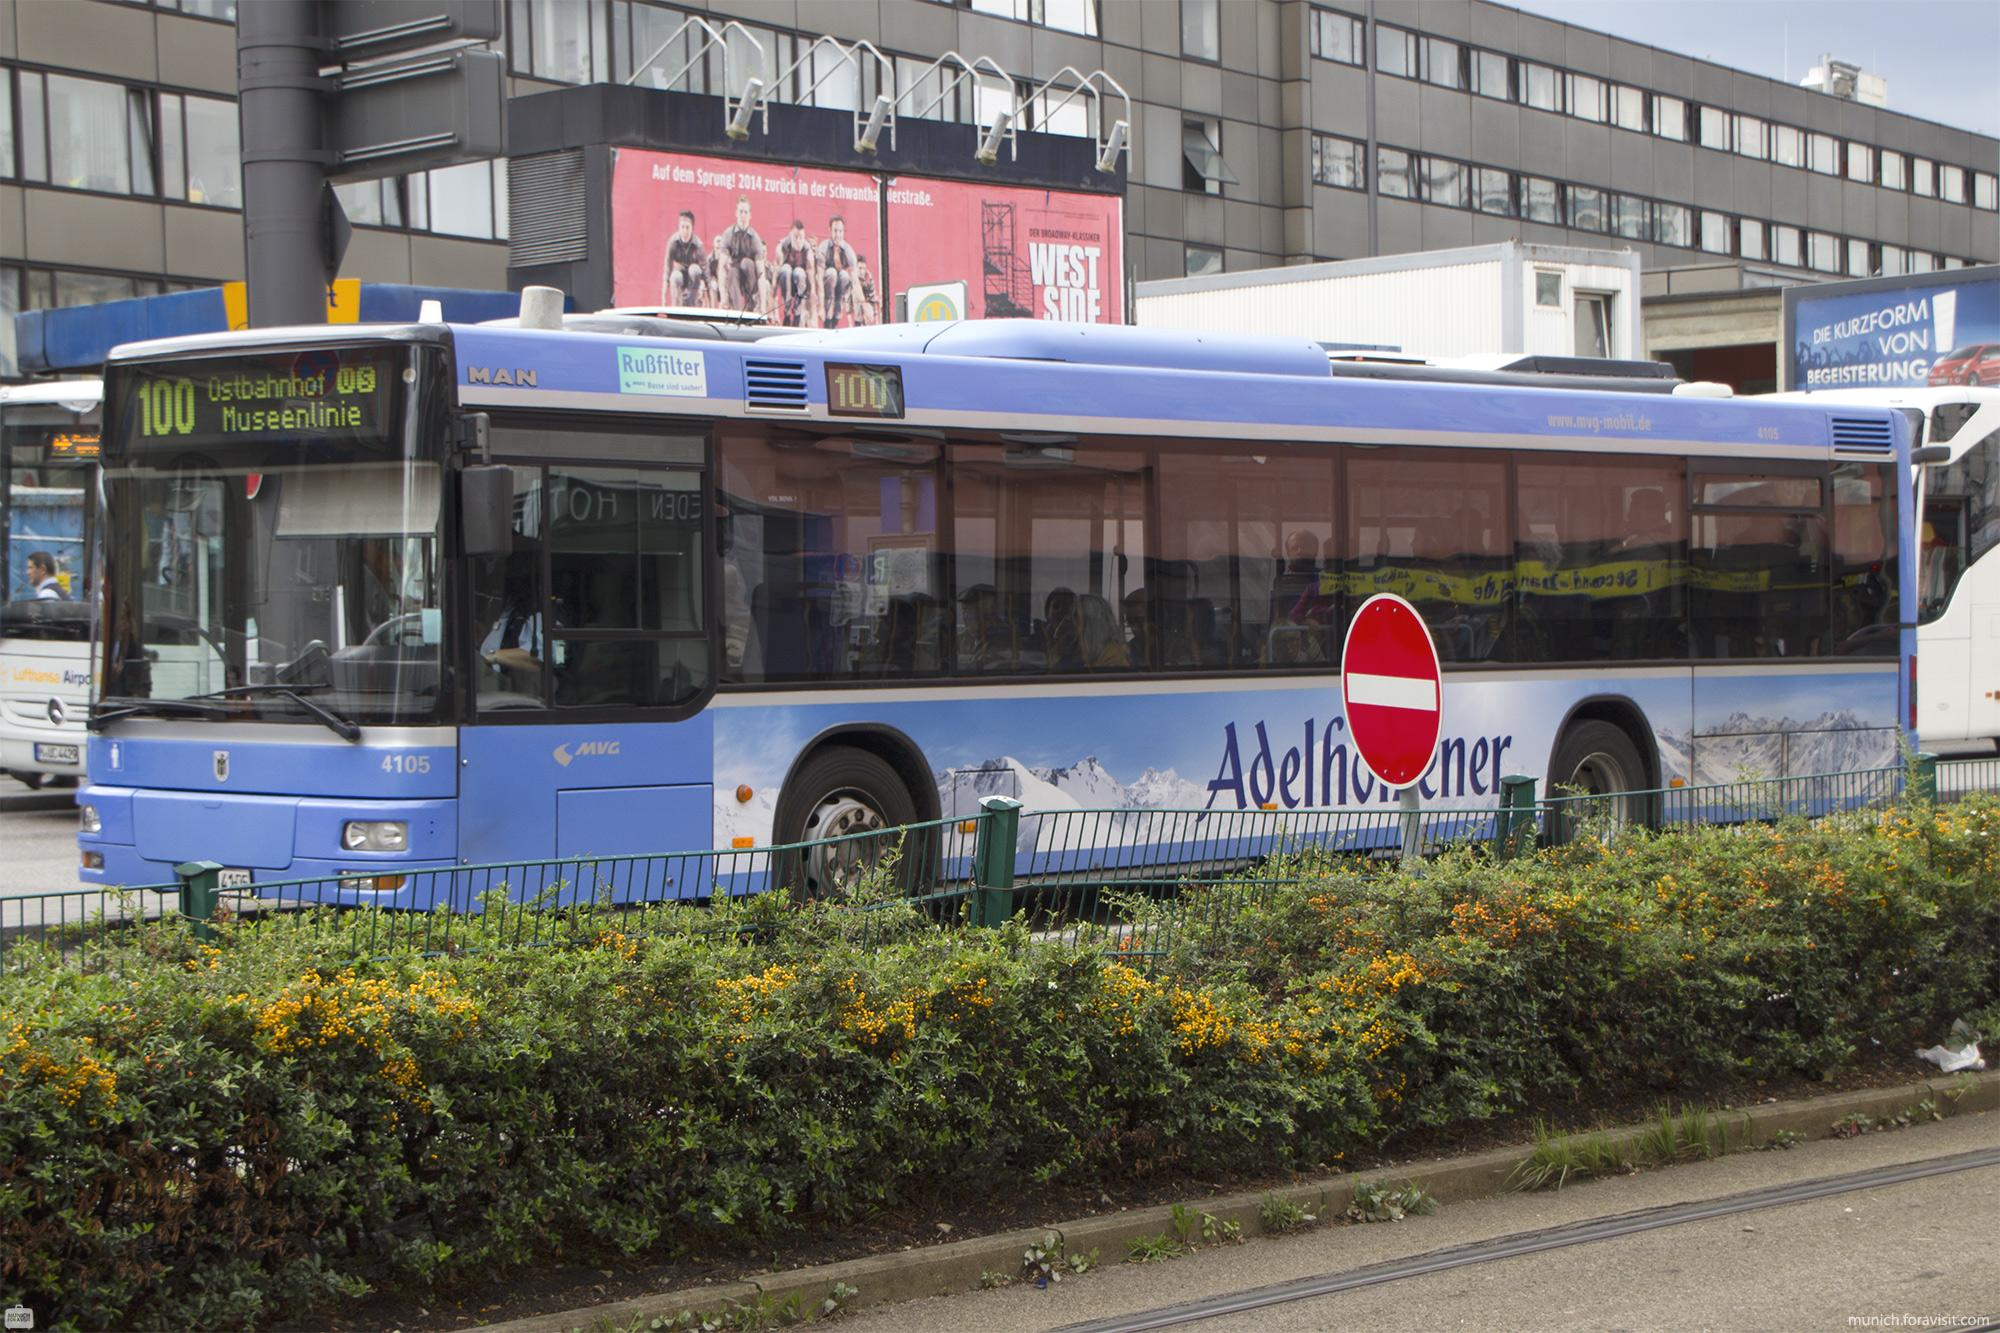 Bus Network Metrobus System In Munich Germany